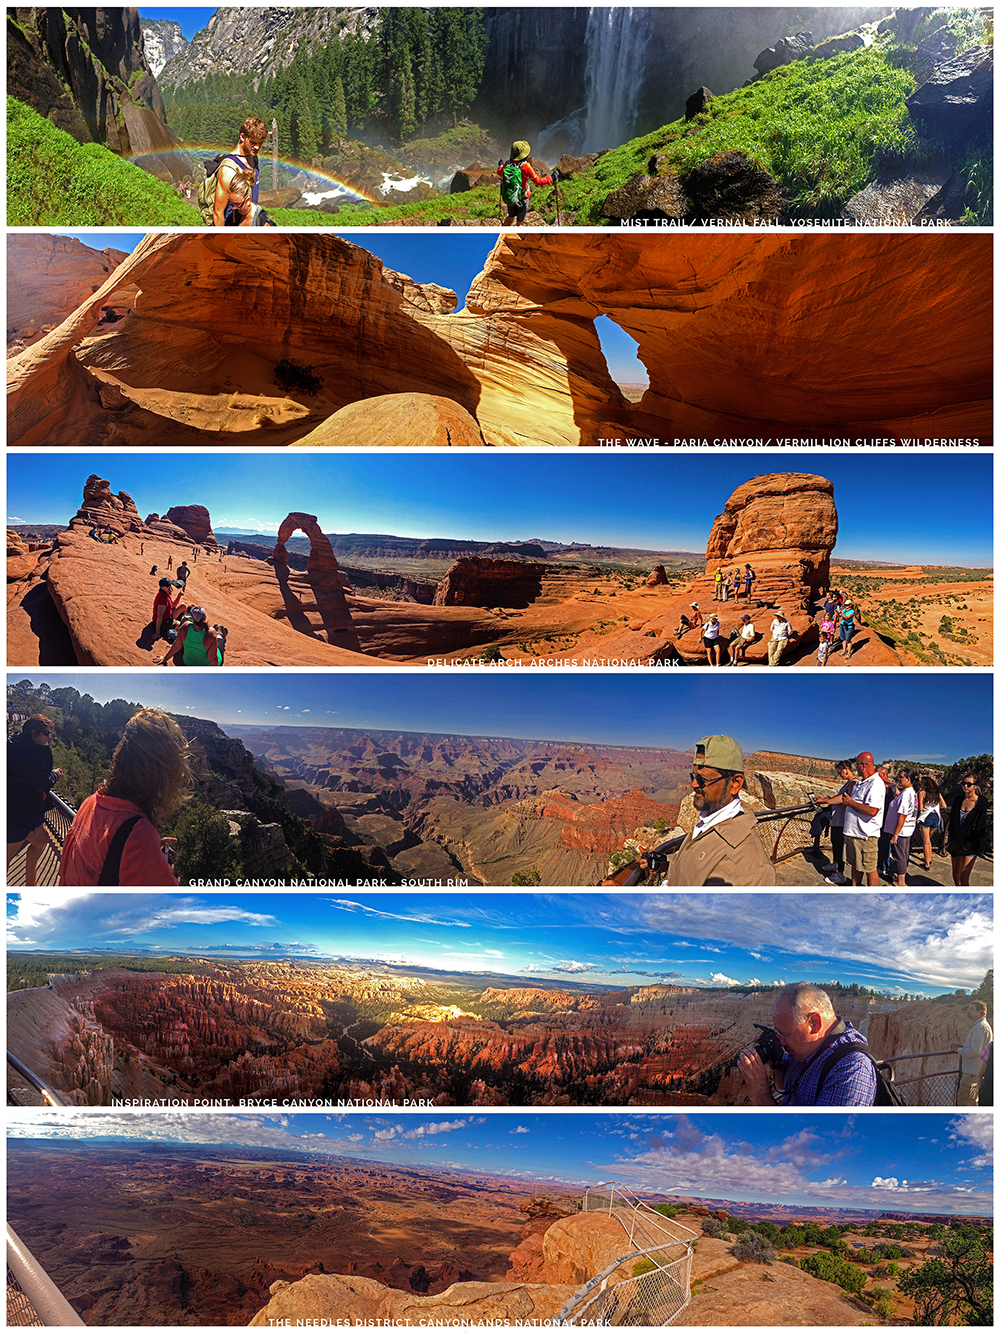 American Southwest 2014 Panorama Poster_08